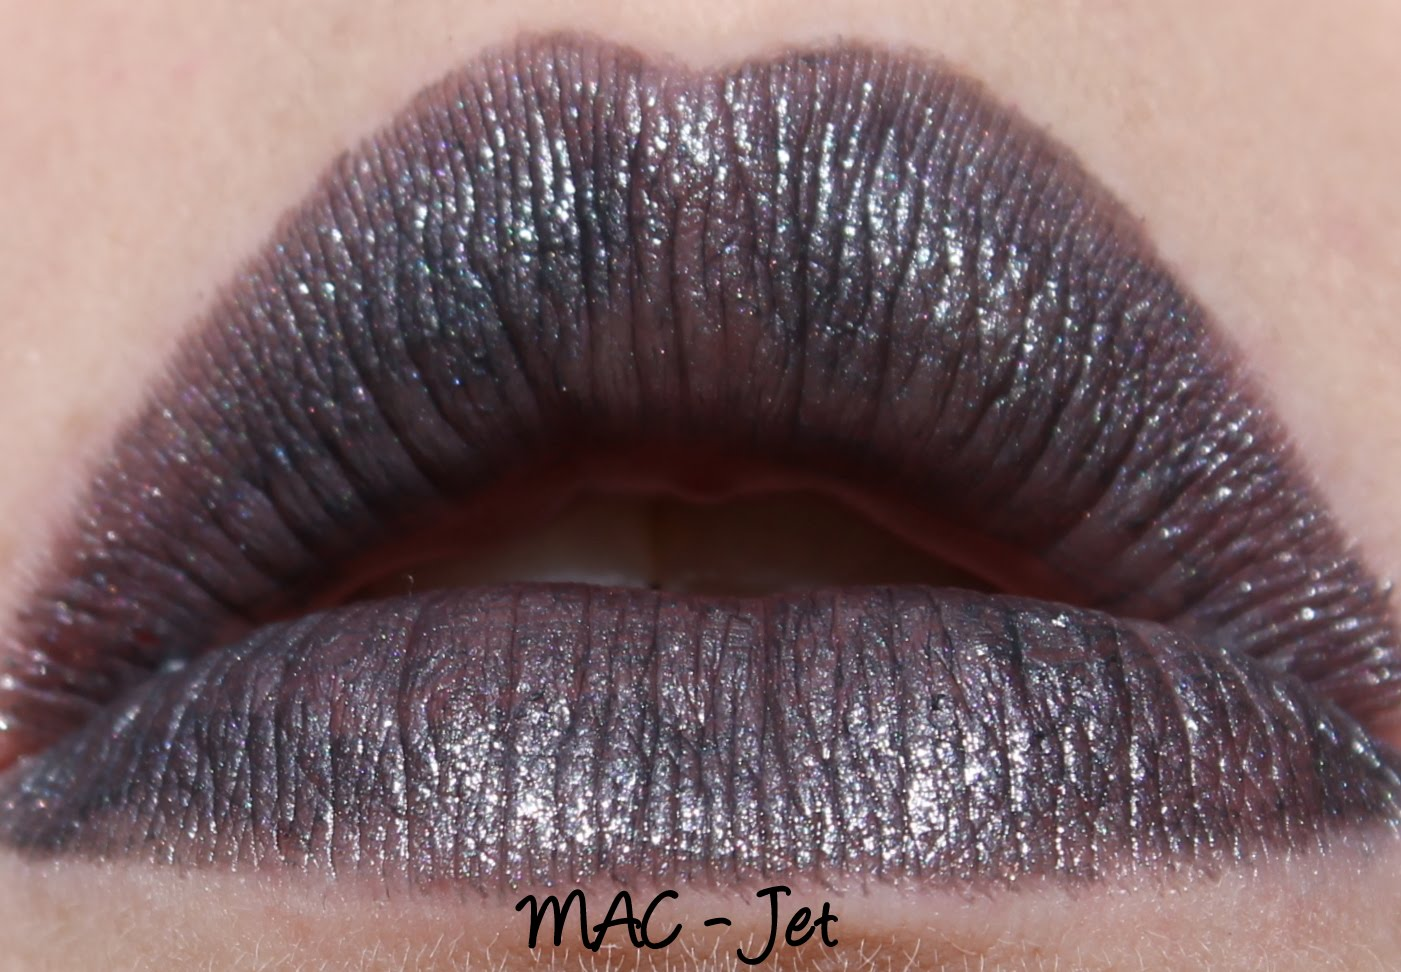 MAC Jet Lipstick Swatches & Review